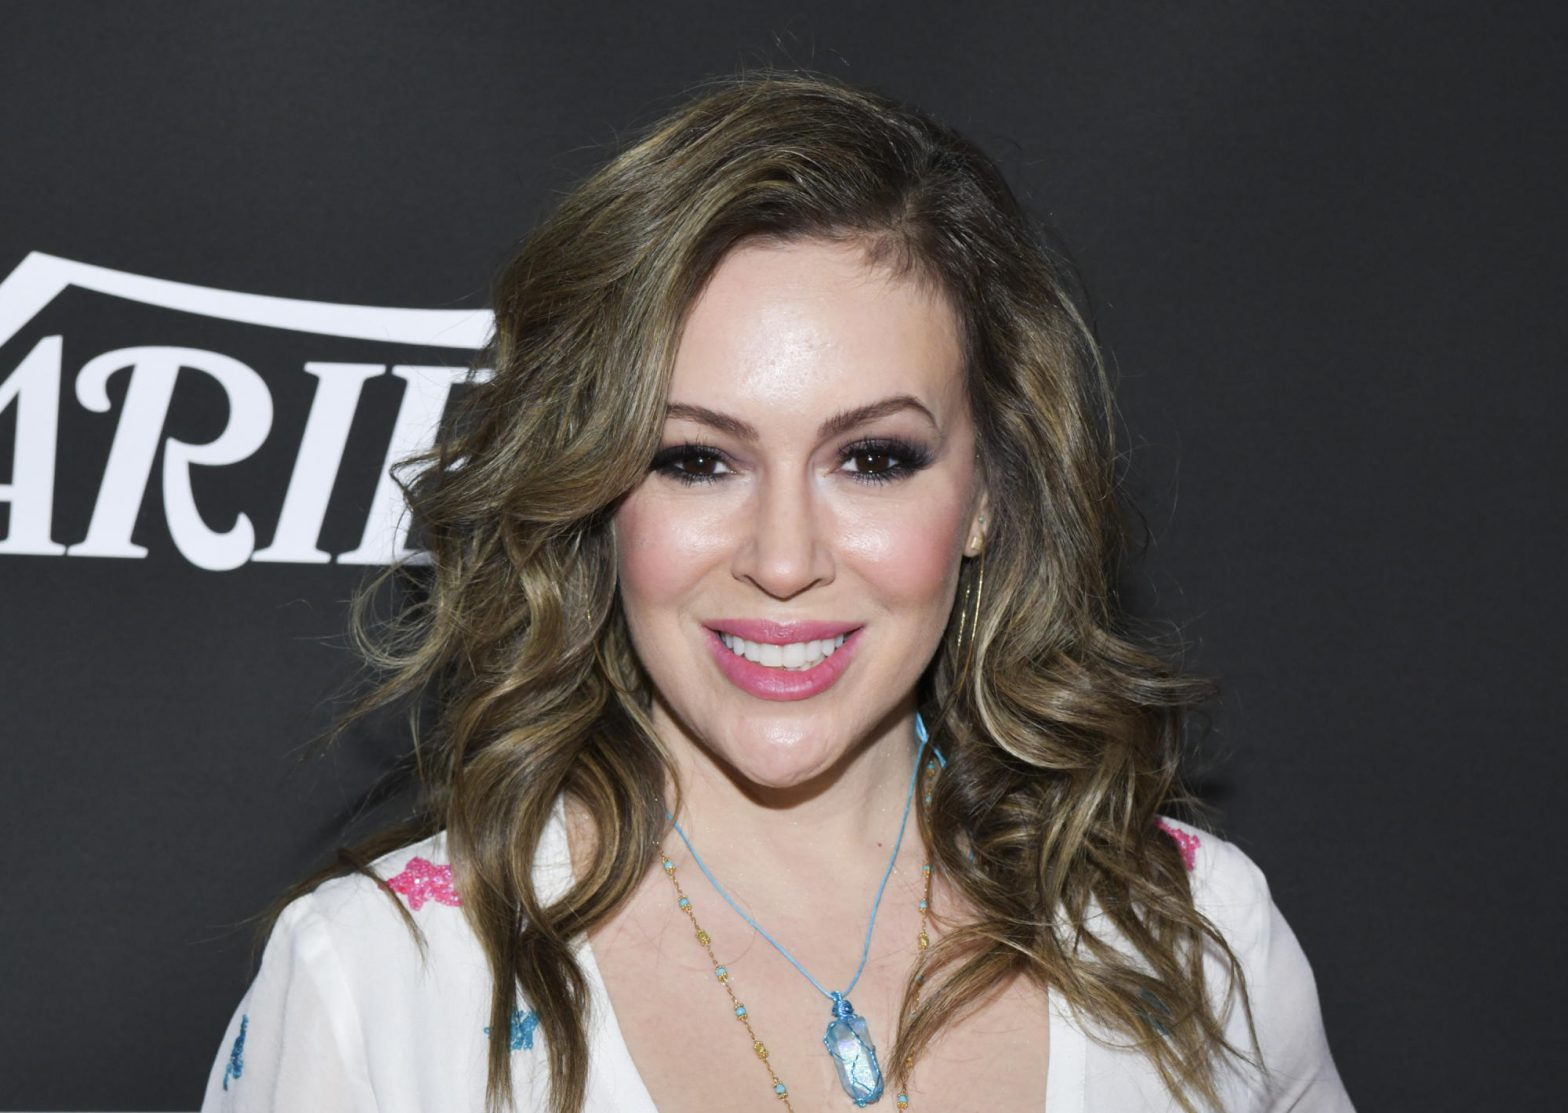 alyssa-milano-says-celebrities-can-help-end-pandemic:-'we-can-reach-people-in-ways-that-dr-…